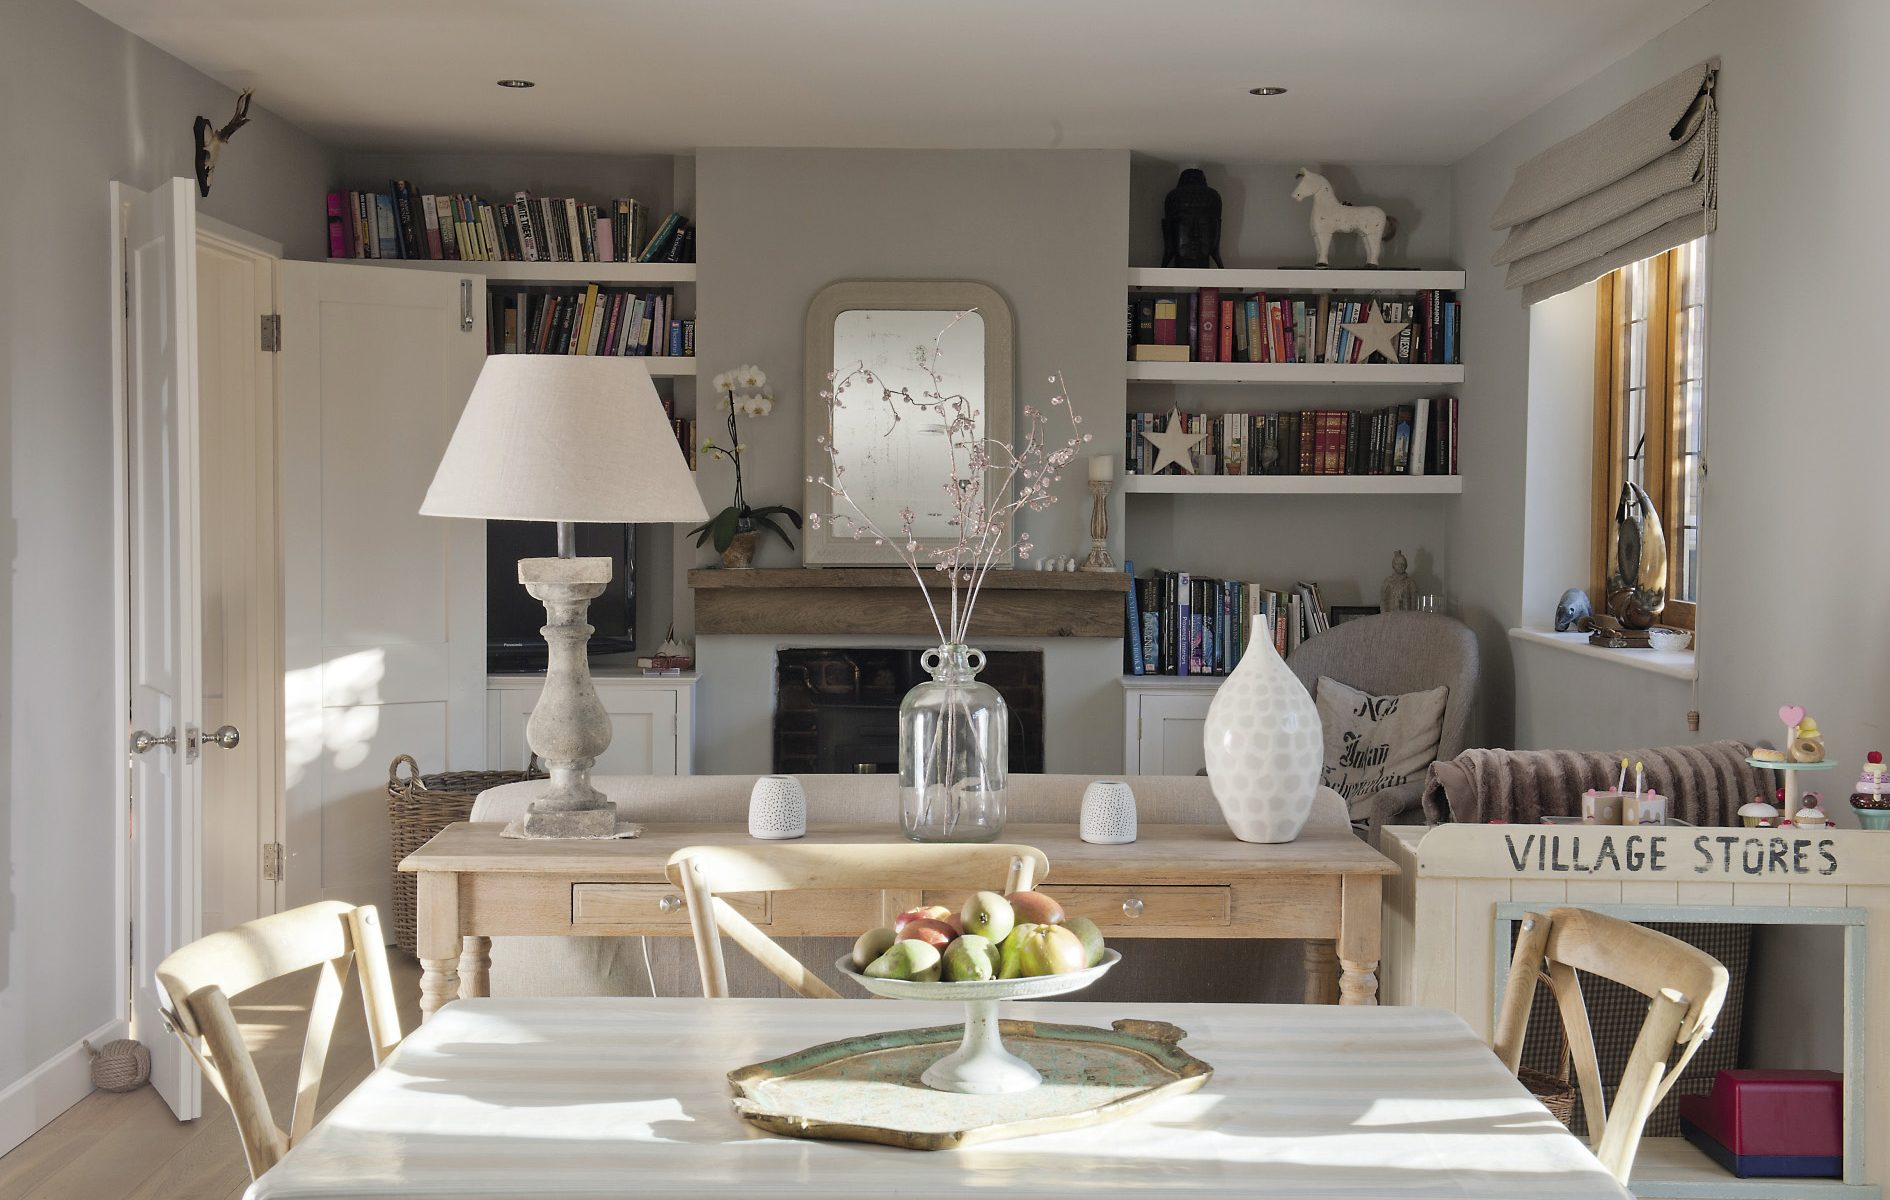 The spacious open plan sitting, dining and kitchen area